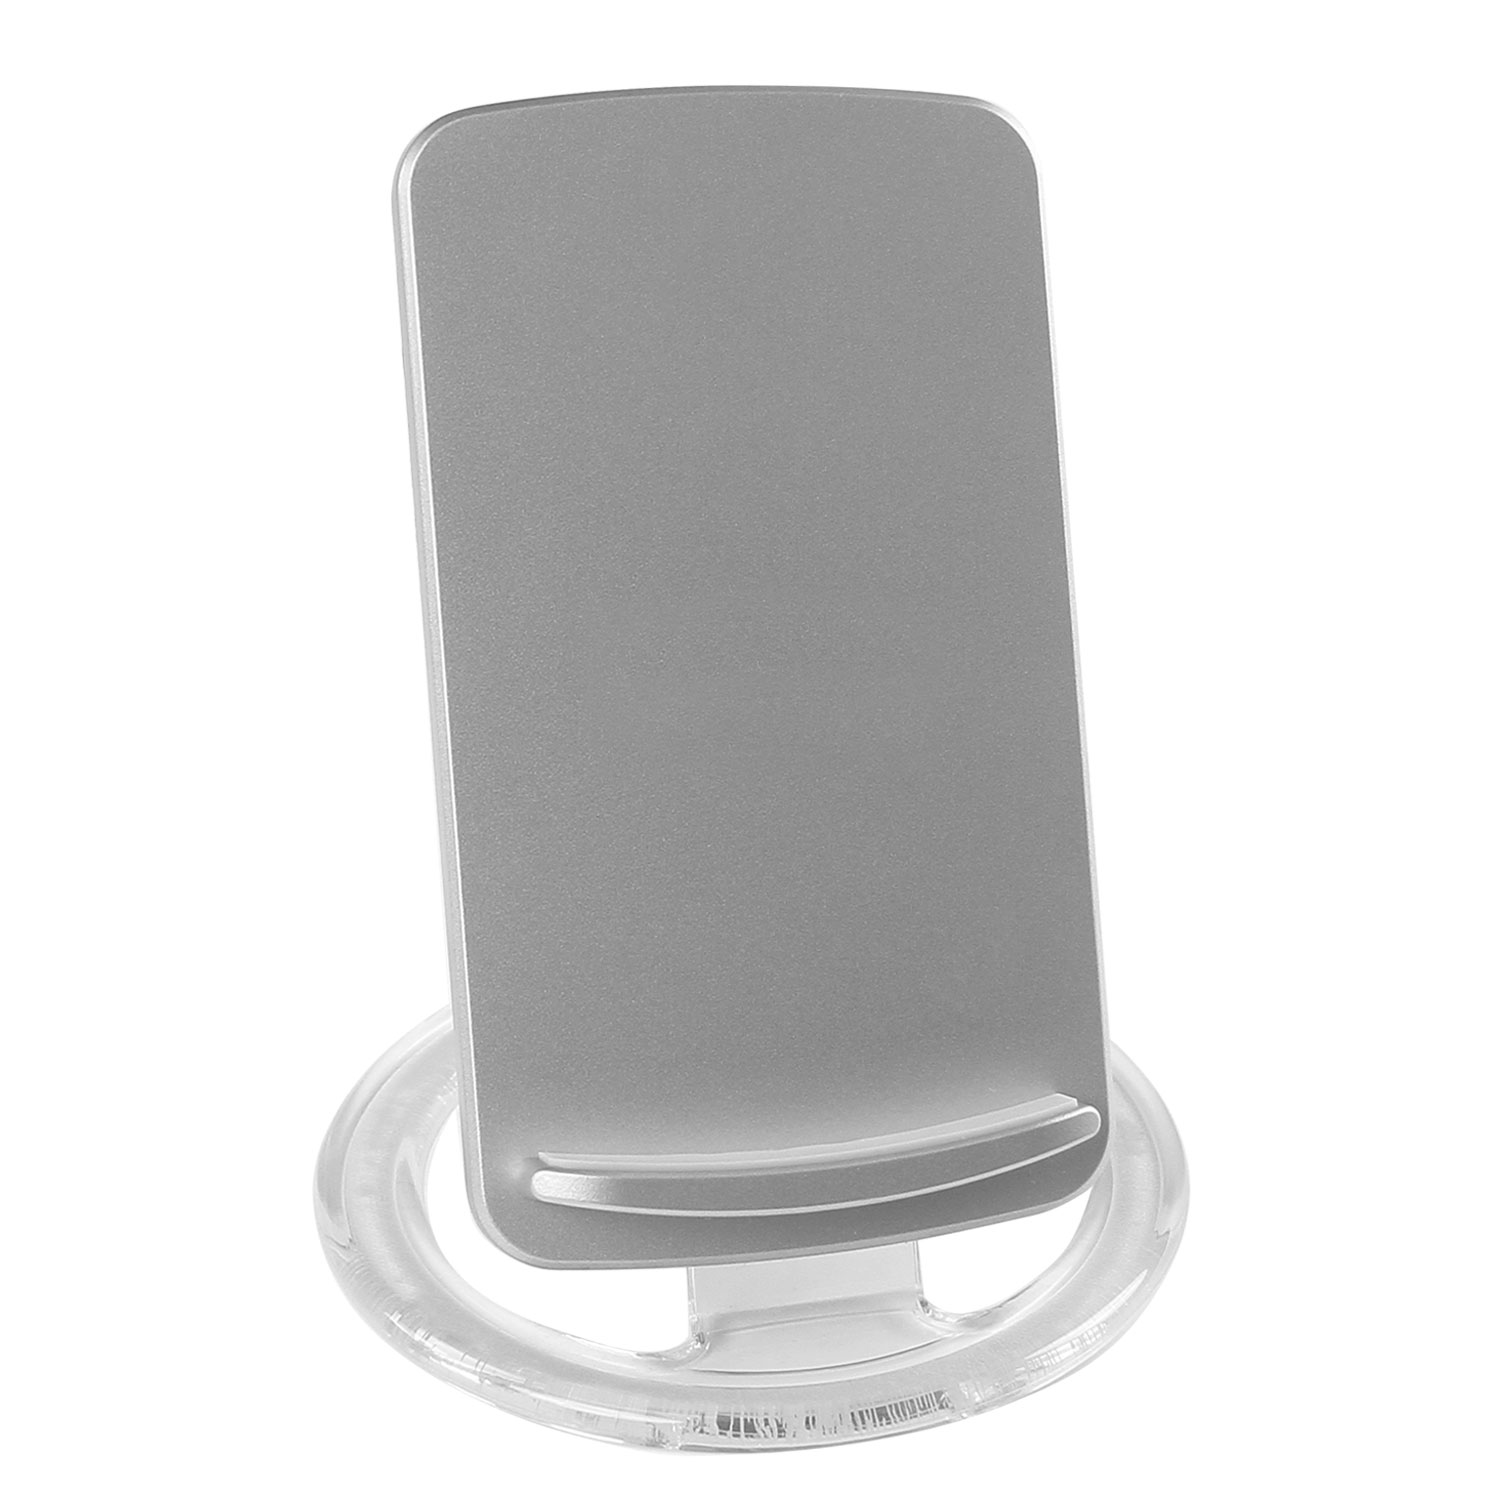 Wireless Desktop Charger Silver